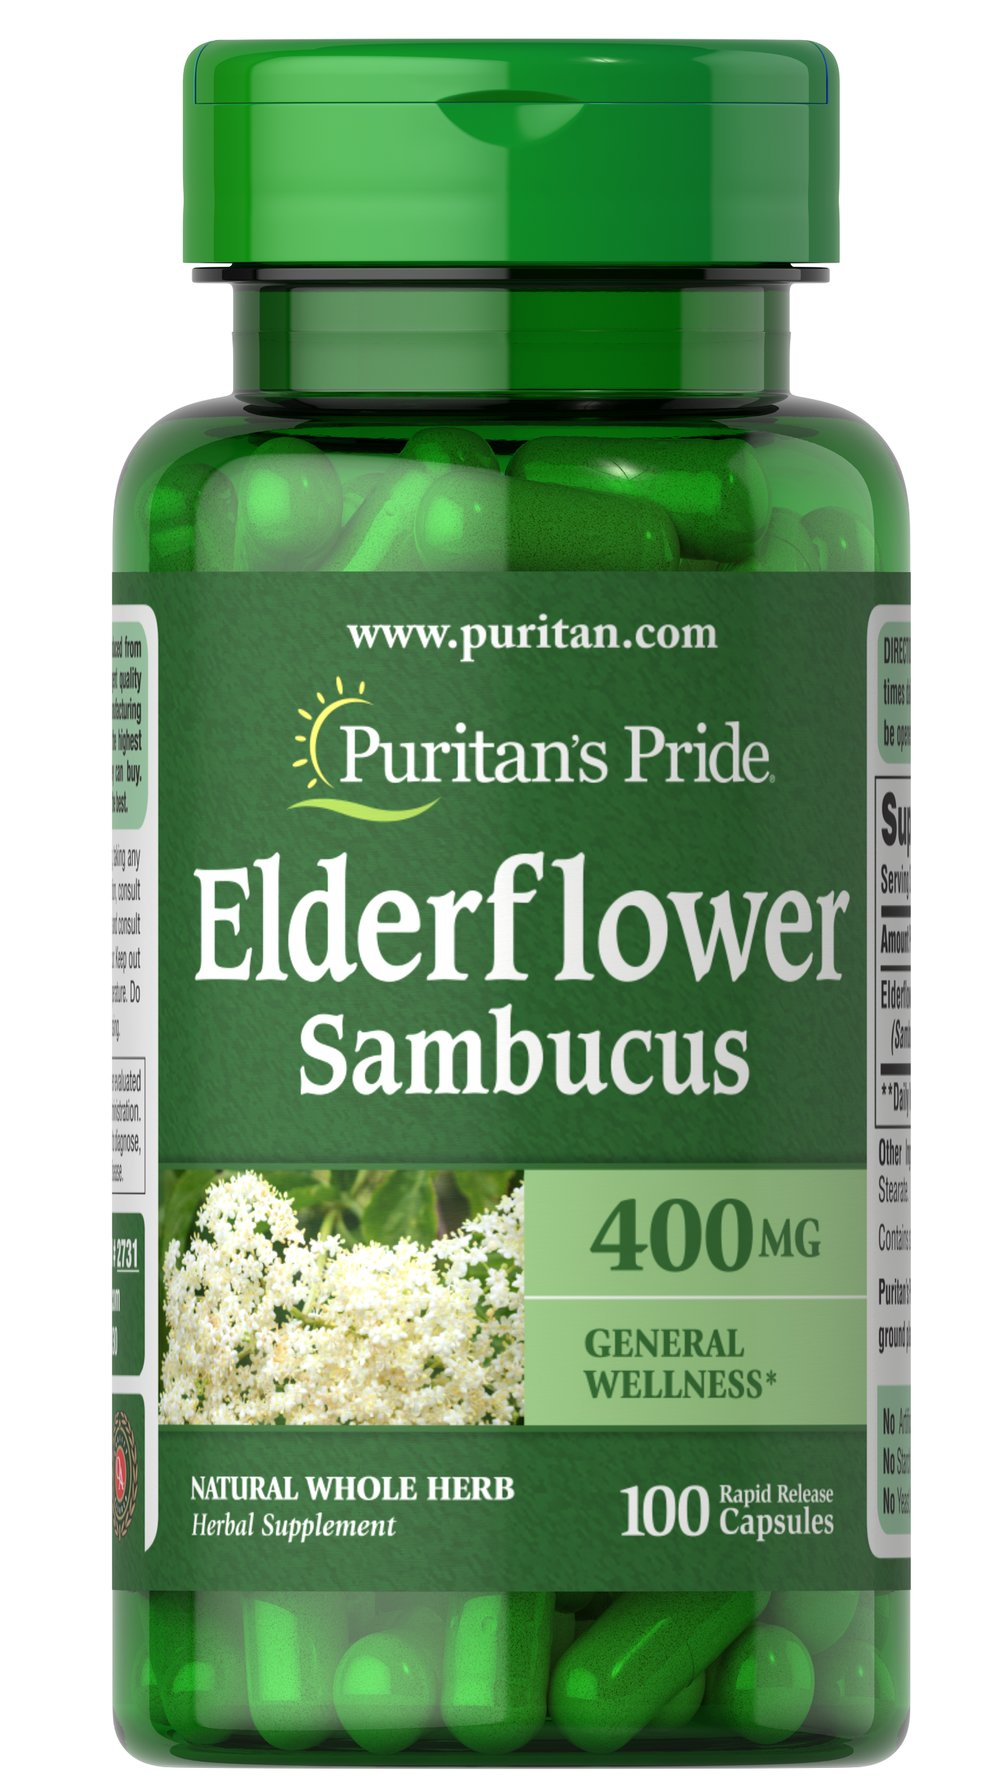 Elderberry 400 mg <p>Possesses antioxidant properties to help fight against cell-damaging free radicals in the body**</p><p>Elderberries have a long history of use and are prized for their beneficial flavonoids — phytochemicals that are known for wellness**</p><p>Rapid Release capsules disperse the active ingredients quickly into your body for fast absorption</p><p>Capsules may also be opened and prepared as a tea</p> 100 Capsules 400 mg $9.99